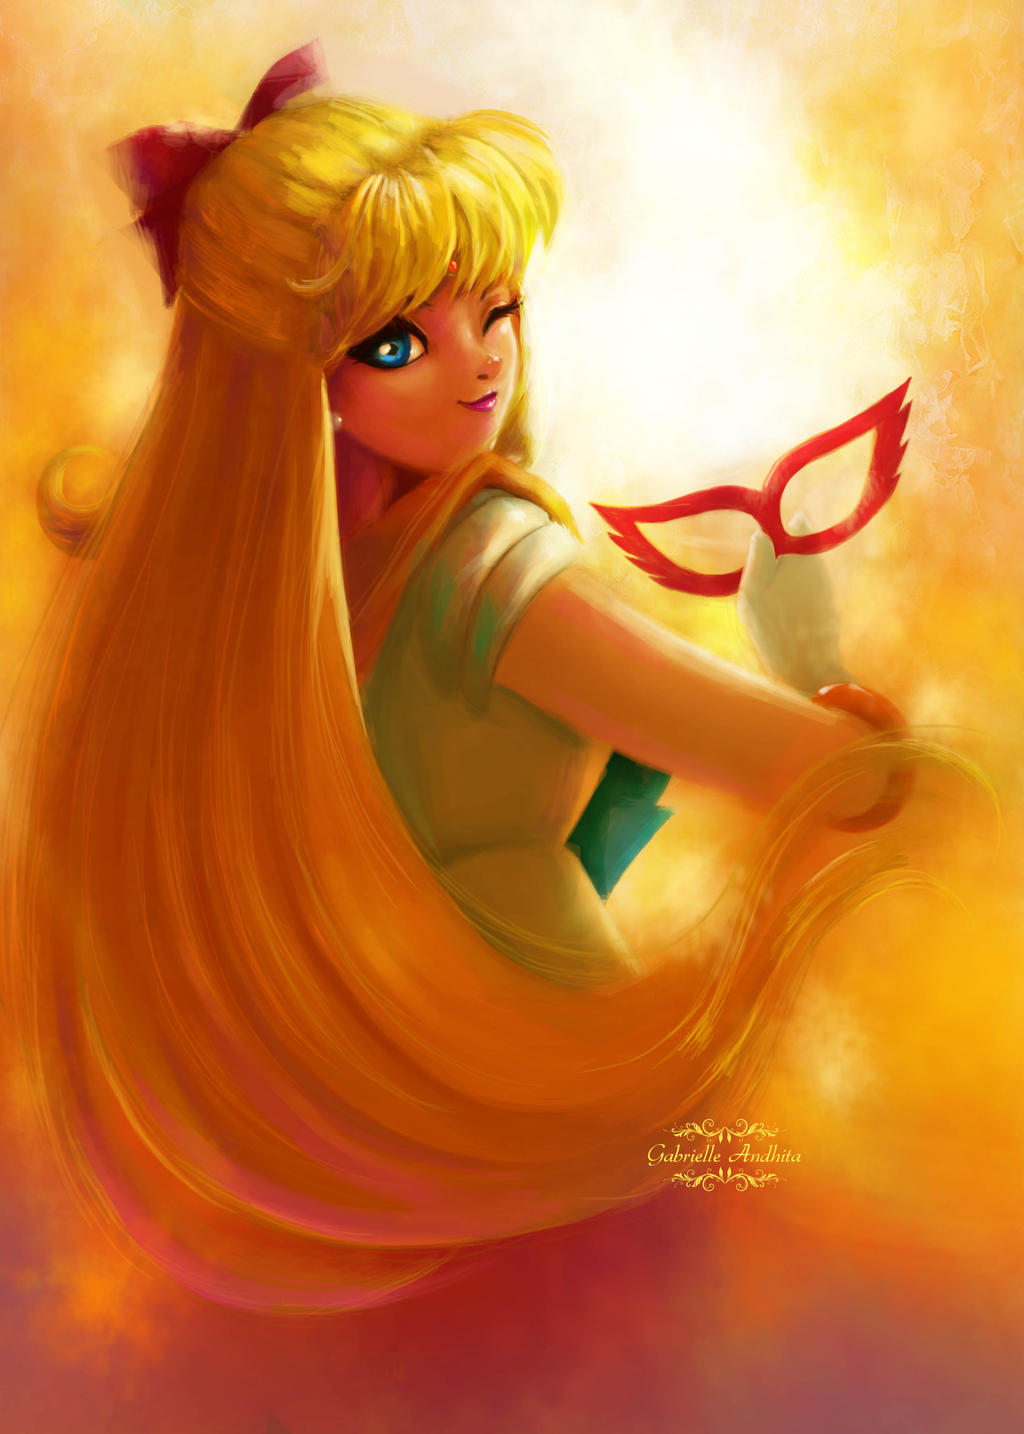 Sailor Venus by gabrielleandhita